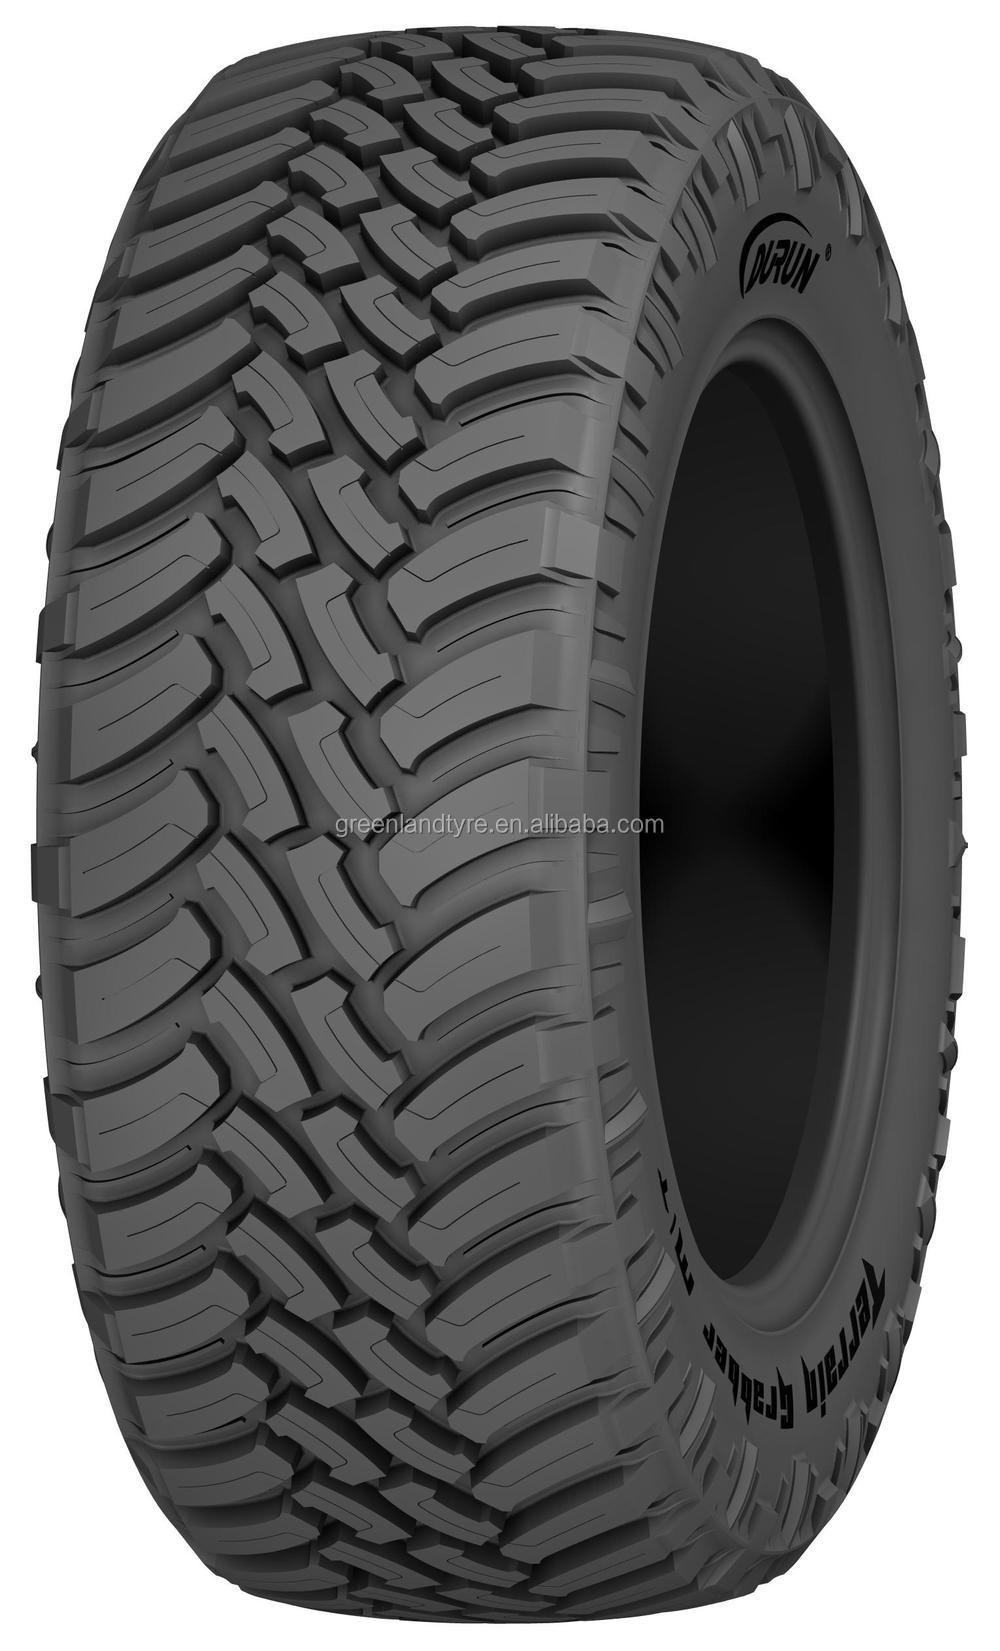 Airless Tires For Sale 185/65r14 Off Road China Cars Prices ...